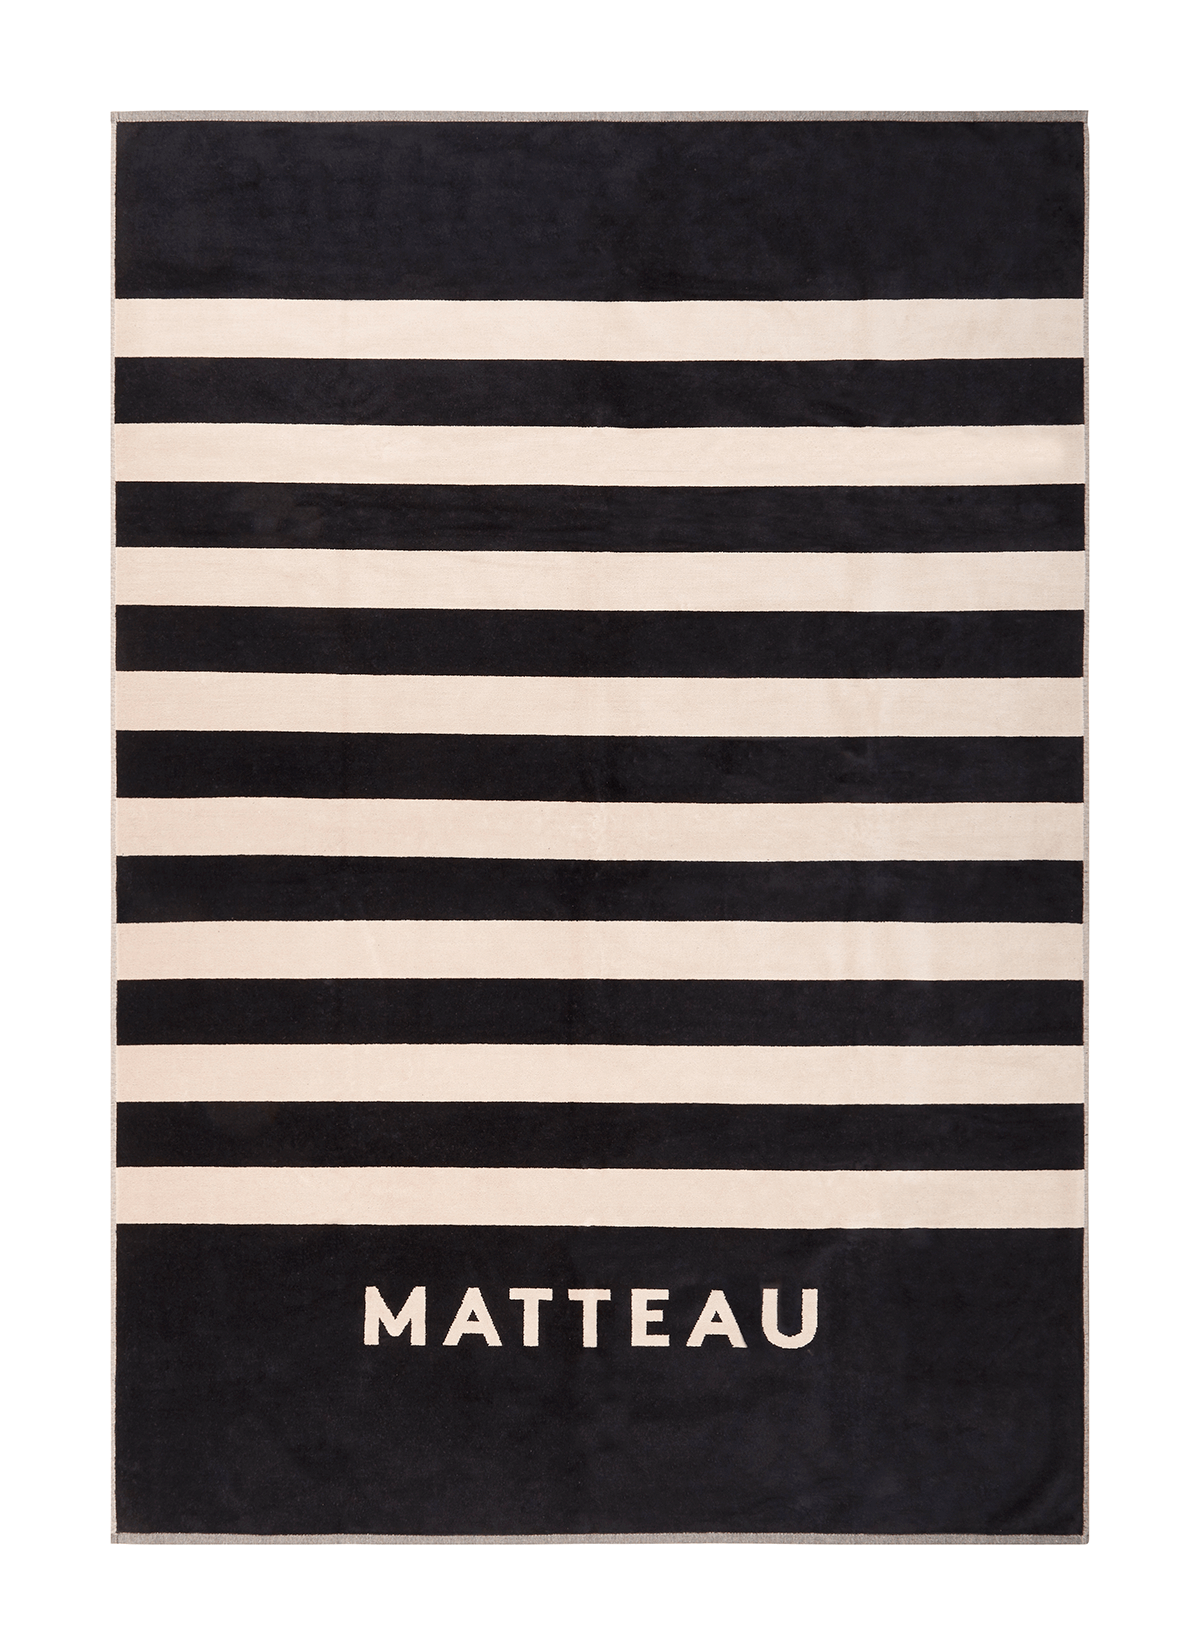 The Matteau Towel